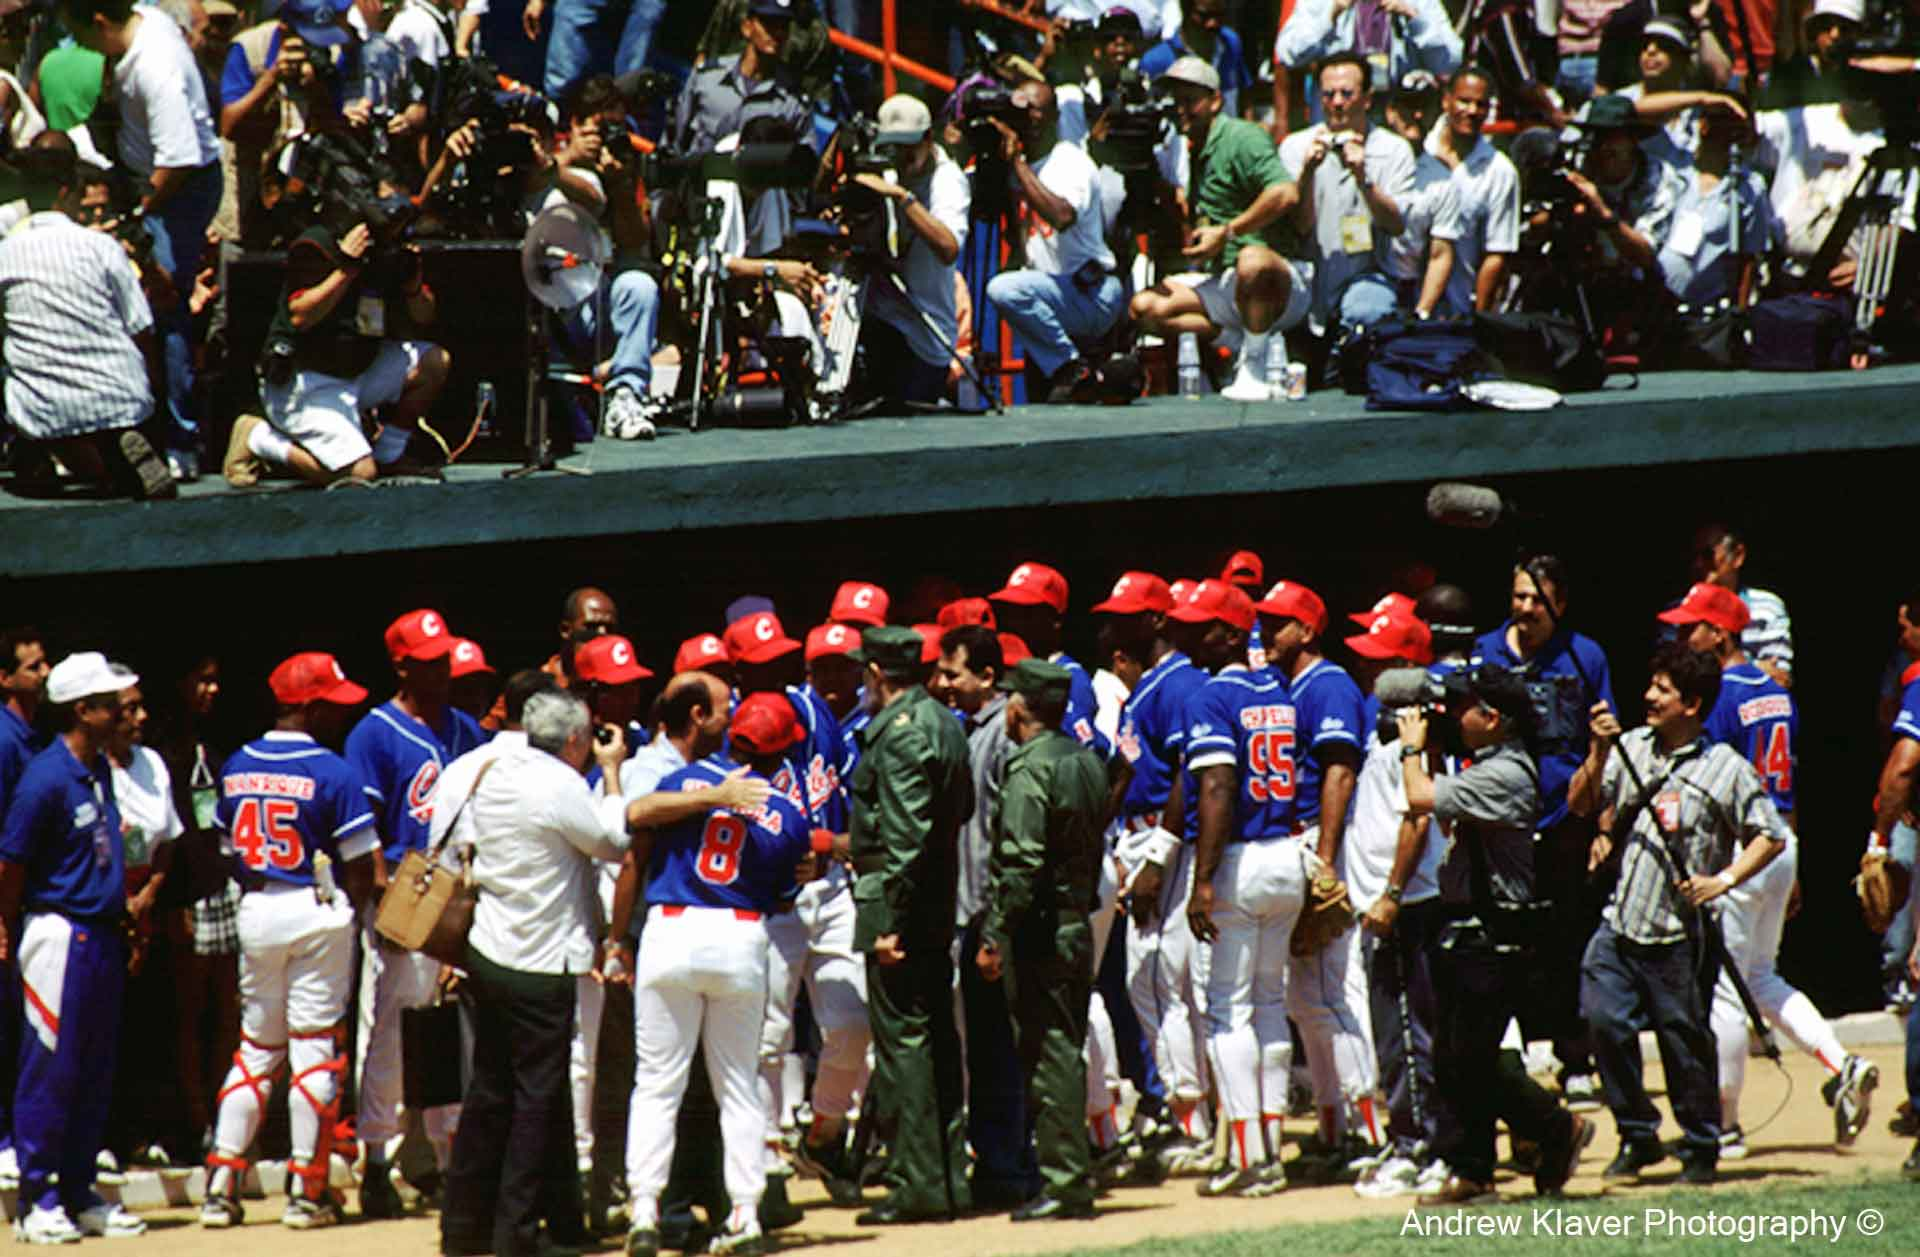 Castro meets the Cuban Baseball team, 1999